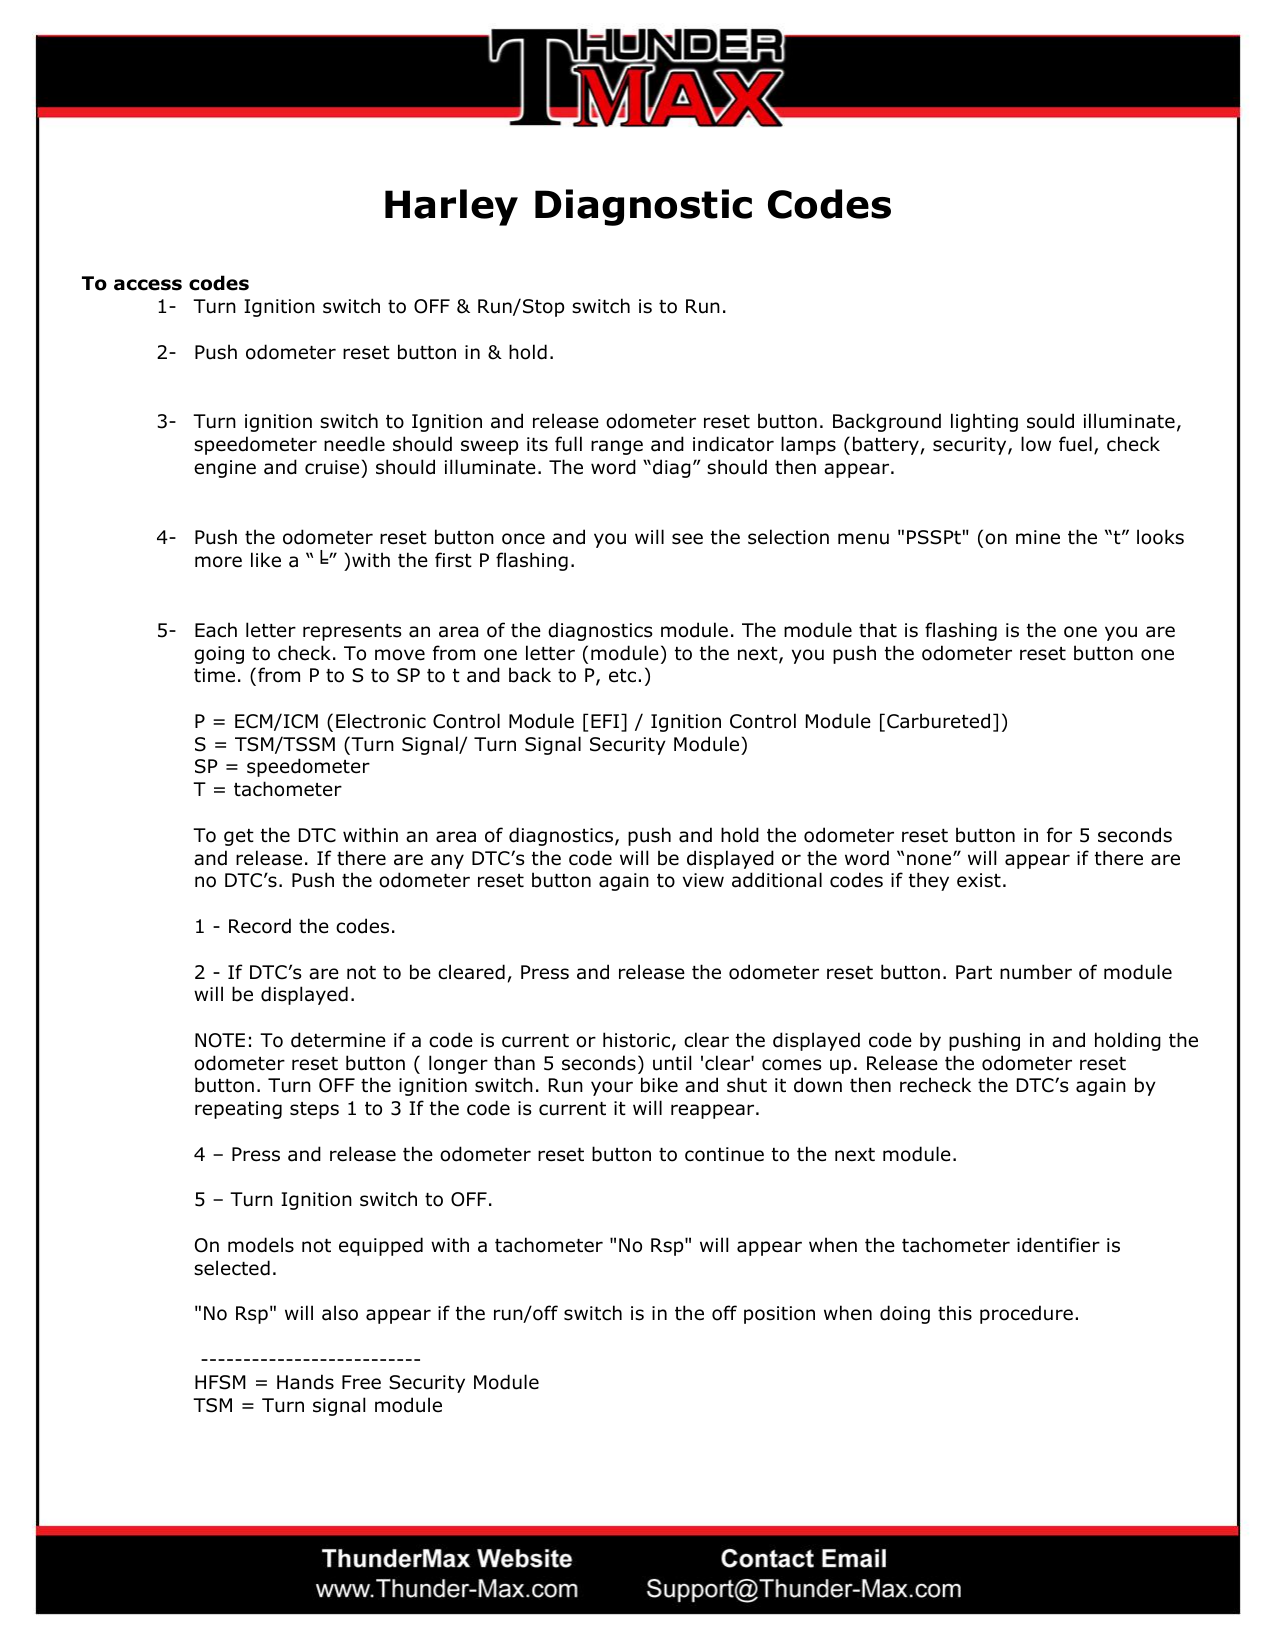 Harley Diagnostic Codes and How To Access Them